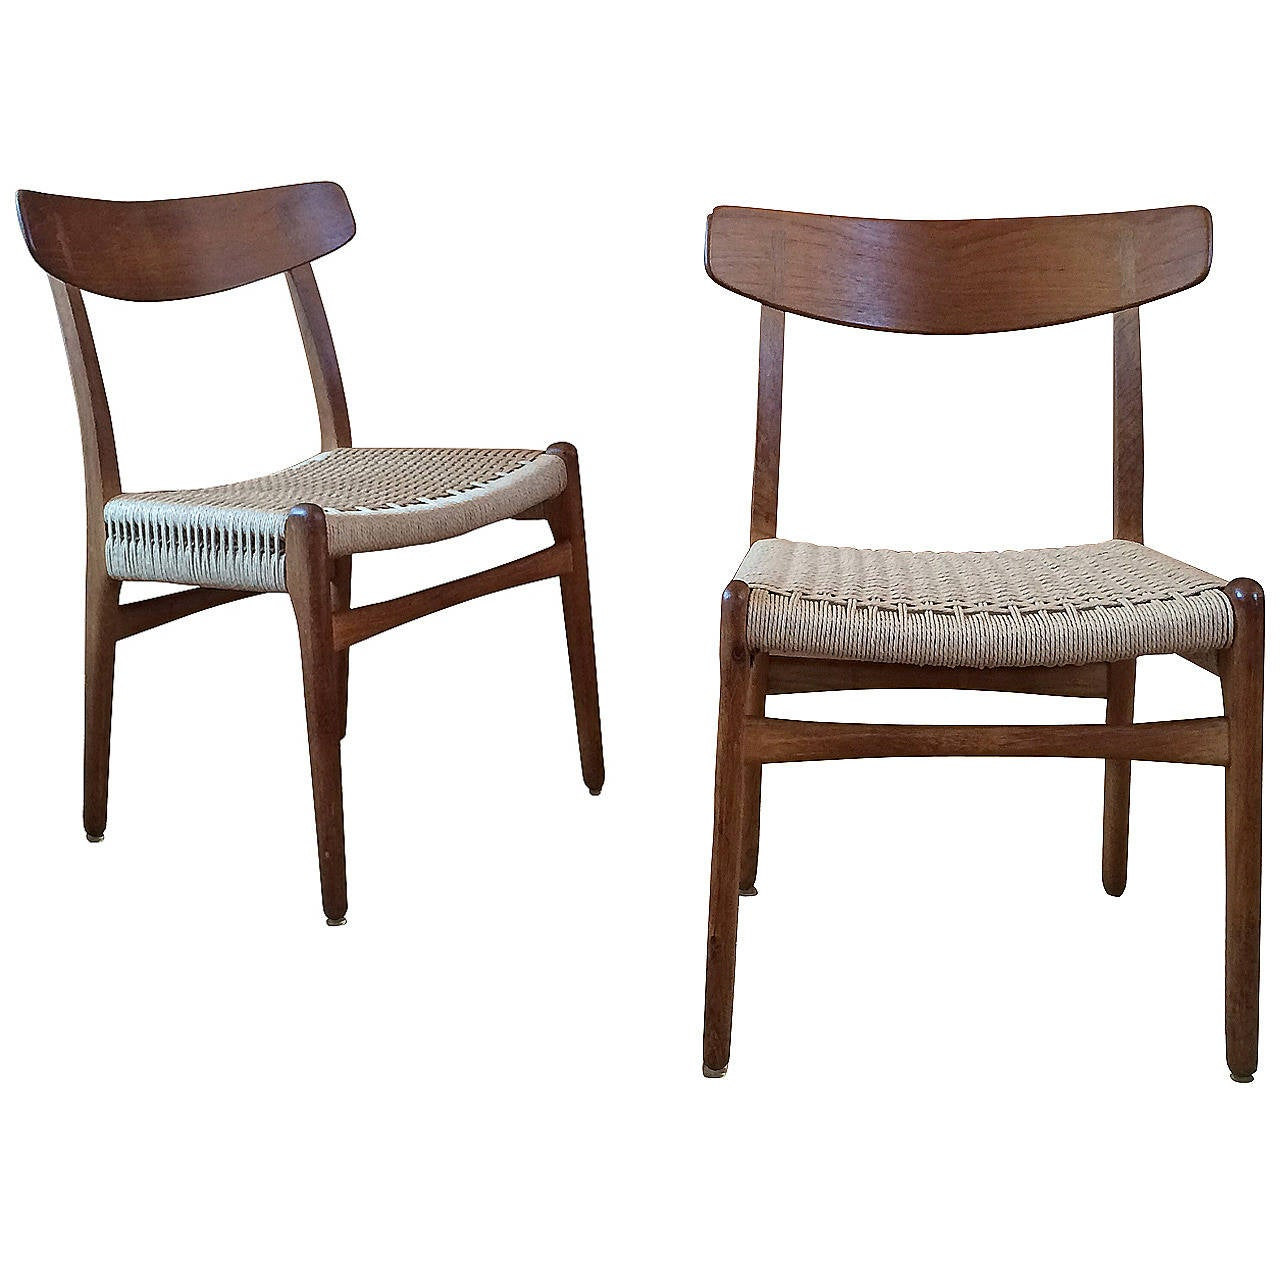 Amazing Museum Quality Hans Wegner Chairs In Oak And Paper Cord, 1950 1